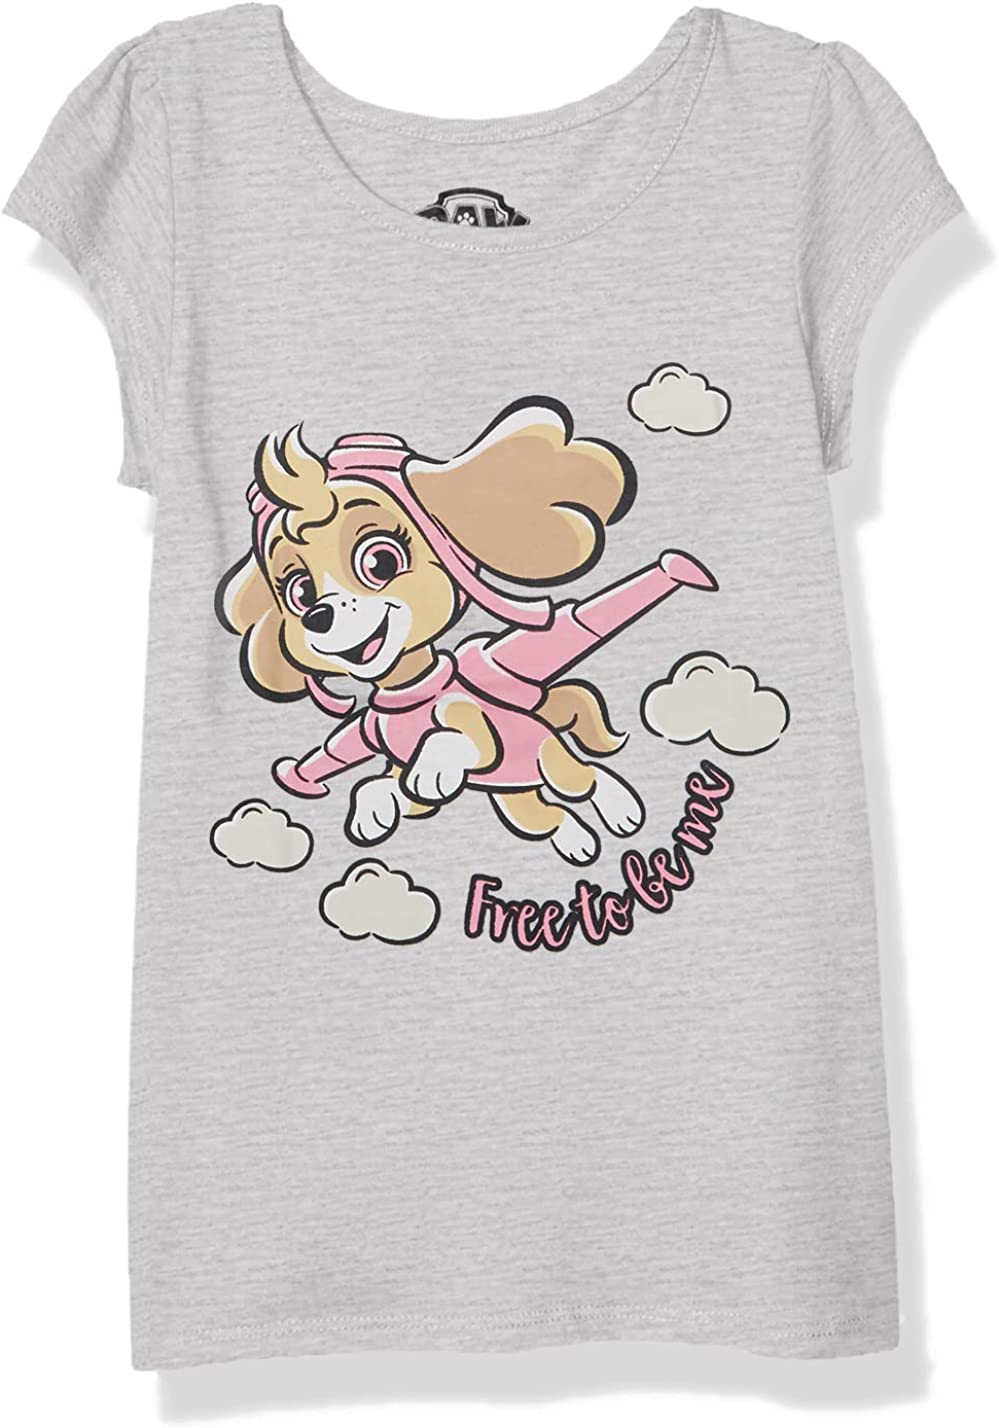 Paw Patrol Max 48% OFF Import Girls Short Sleeve Tee Graphic